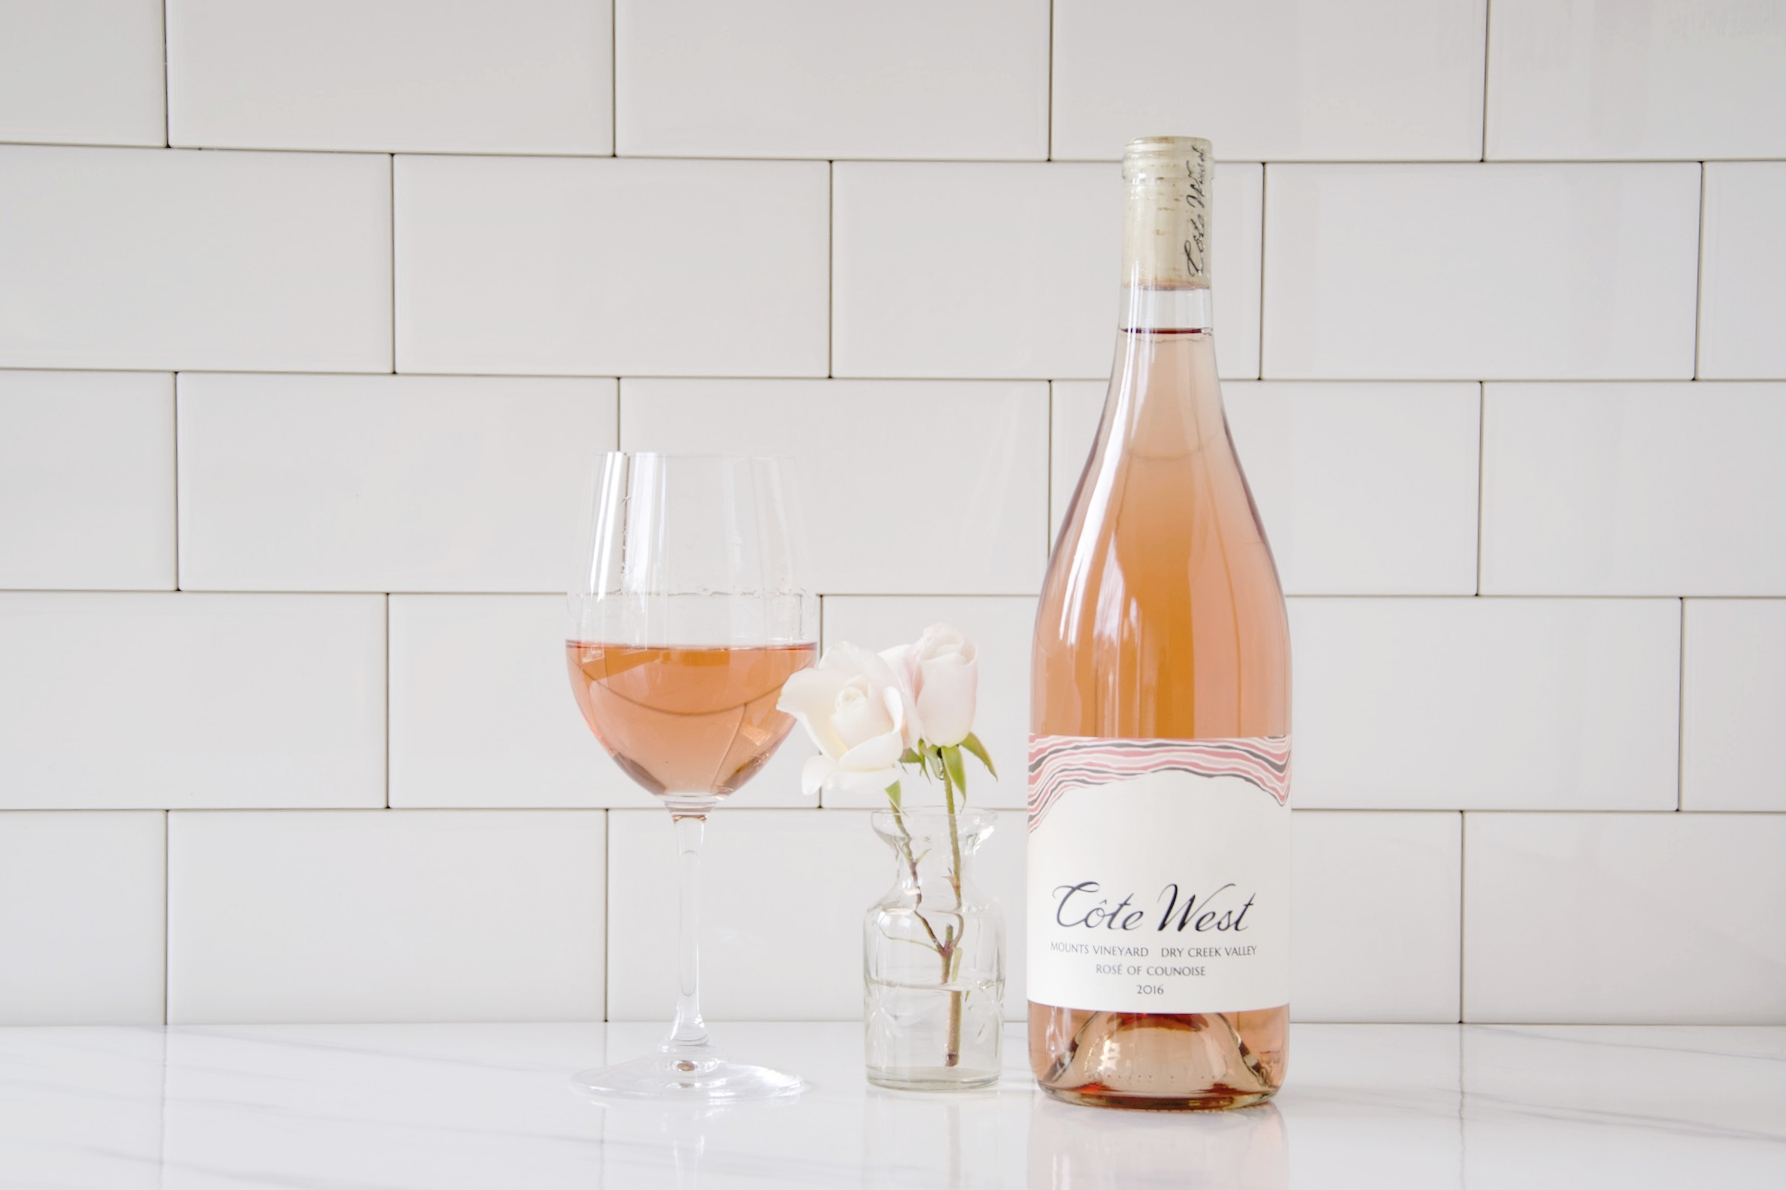 2018 Mounts Dry Creek Valley Rosé of Counoise   Intensely aromatic, bright and perfumed red fruits bound out of the glass. On the palate, this dry rosé has a rich body, yet lively acidity.